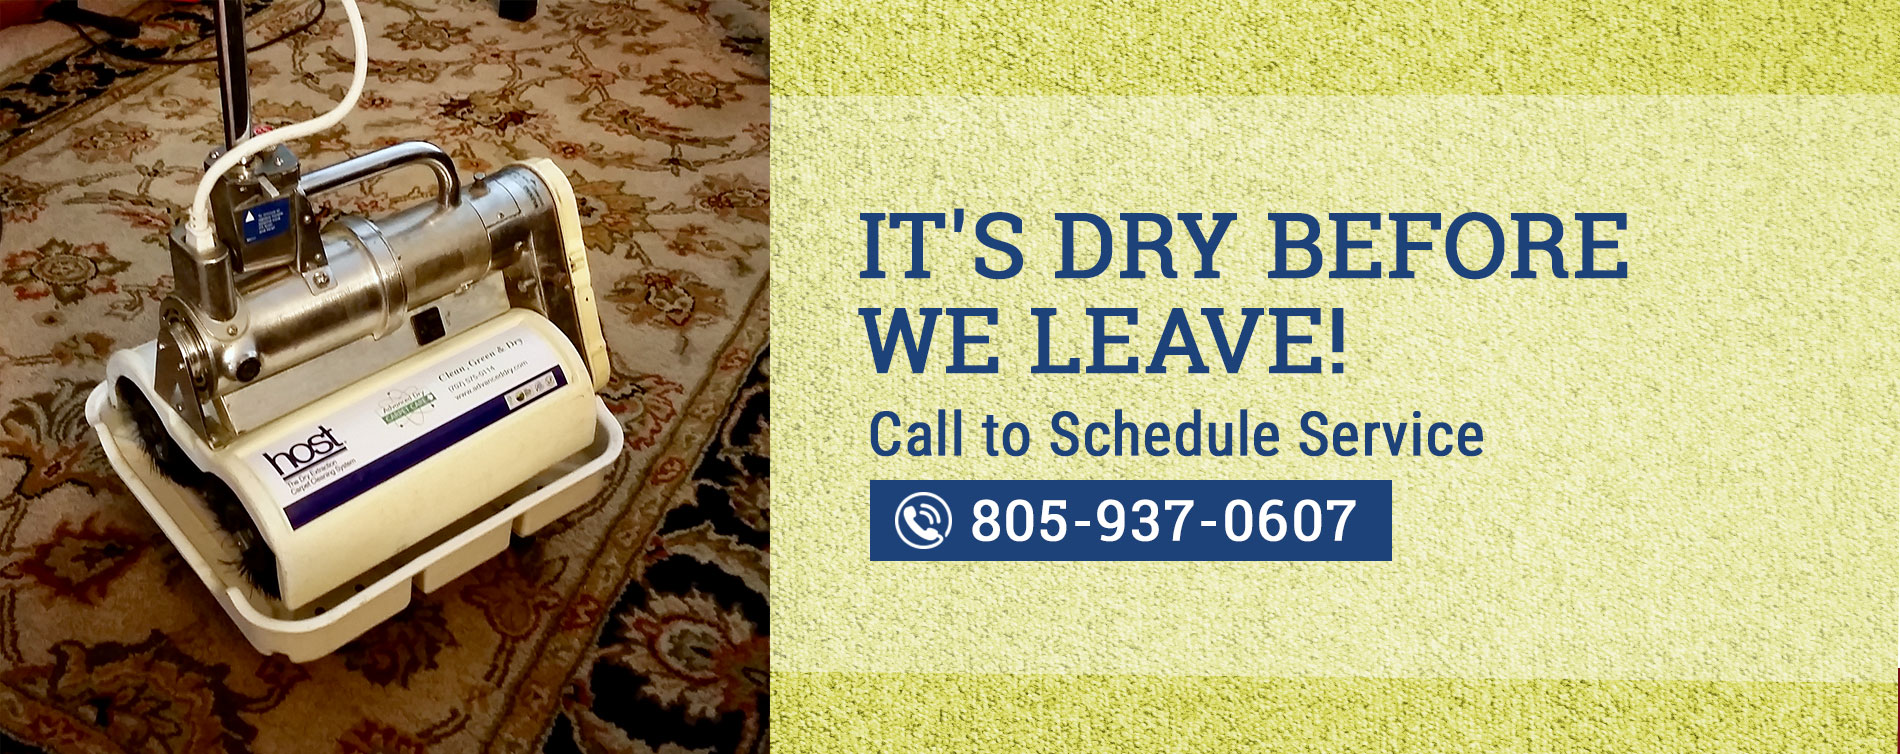 Carpet Cleaning Santa Maria Ca Area Rug Cleaning Service